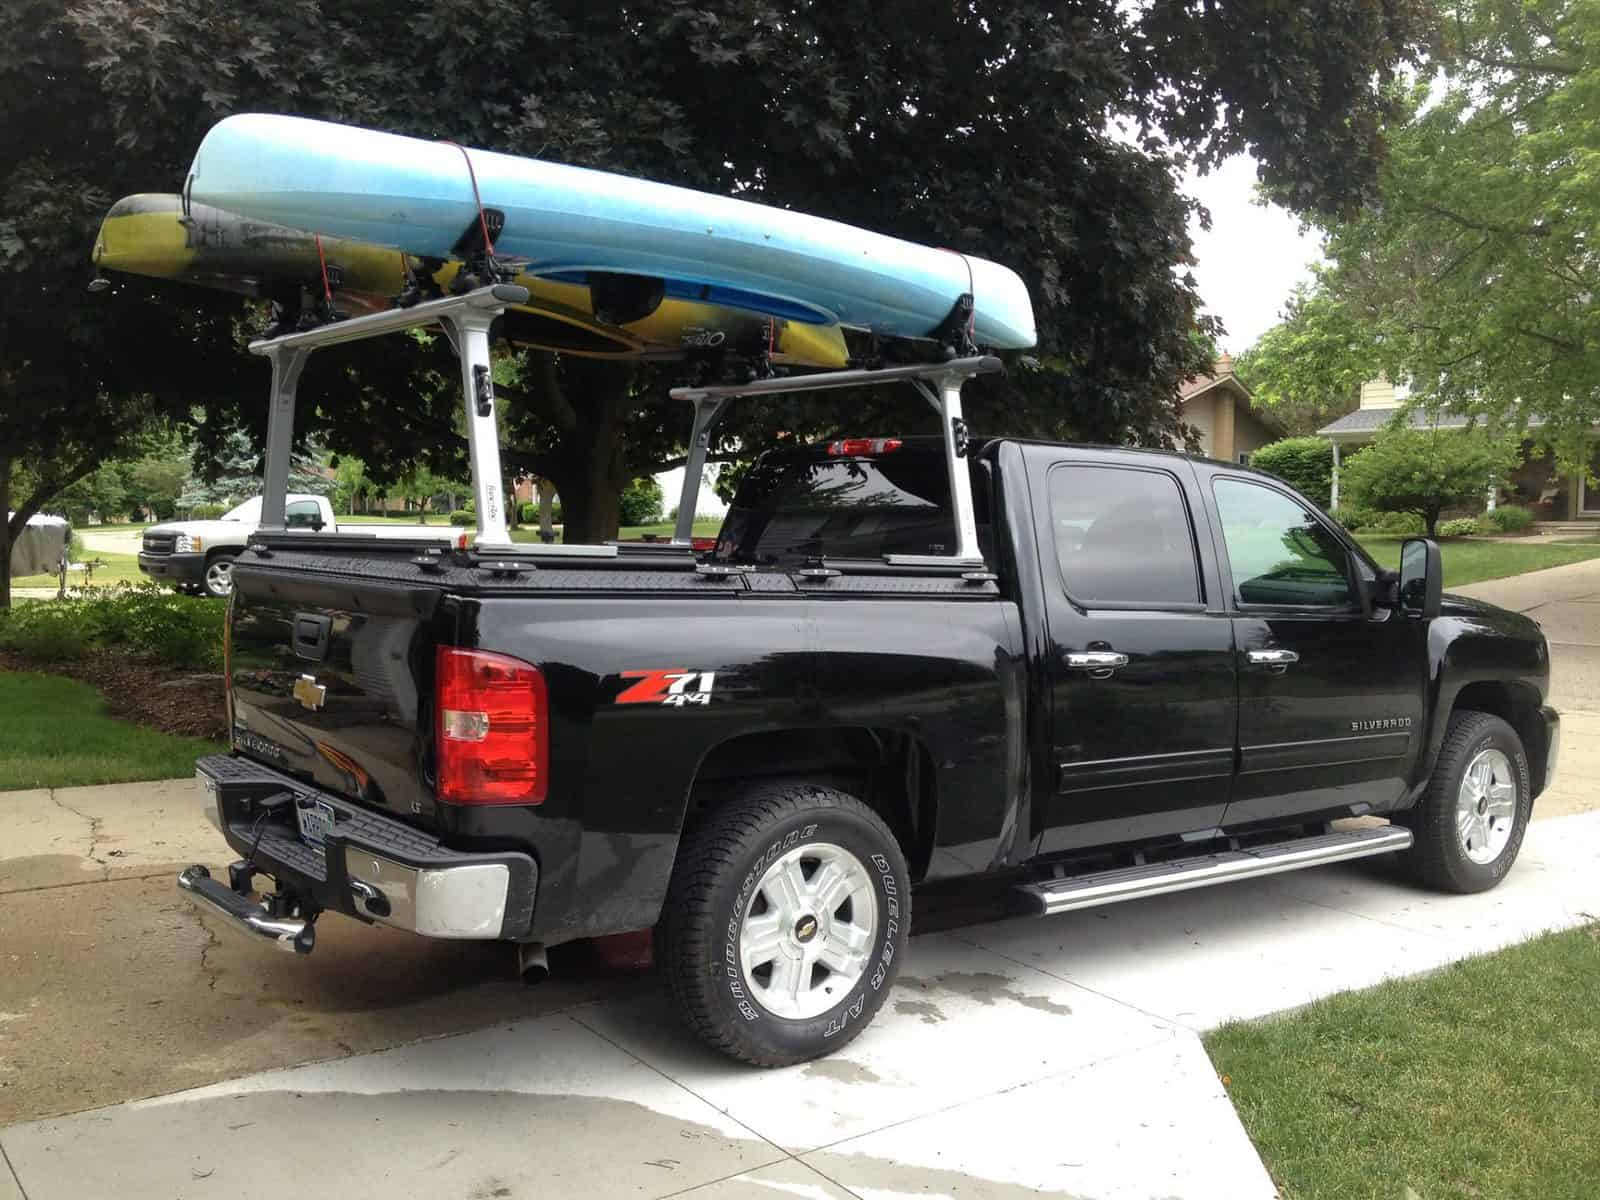 Kayaks being transported on black truck